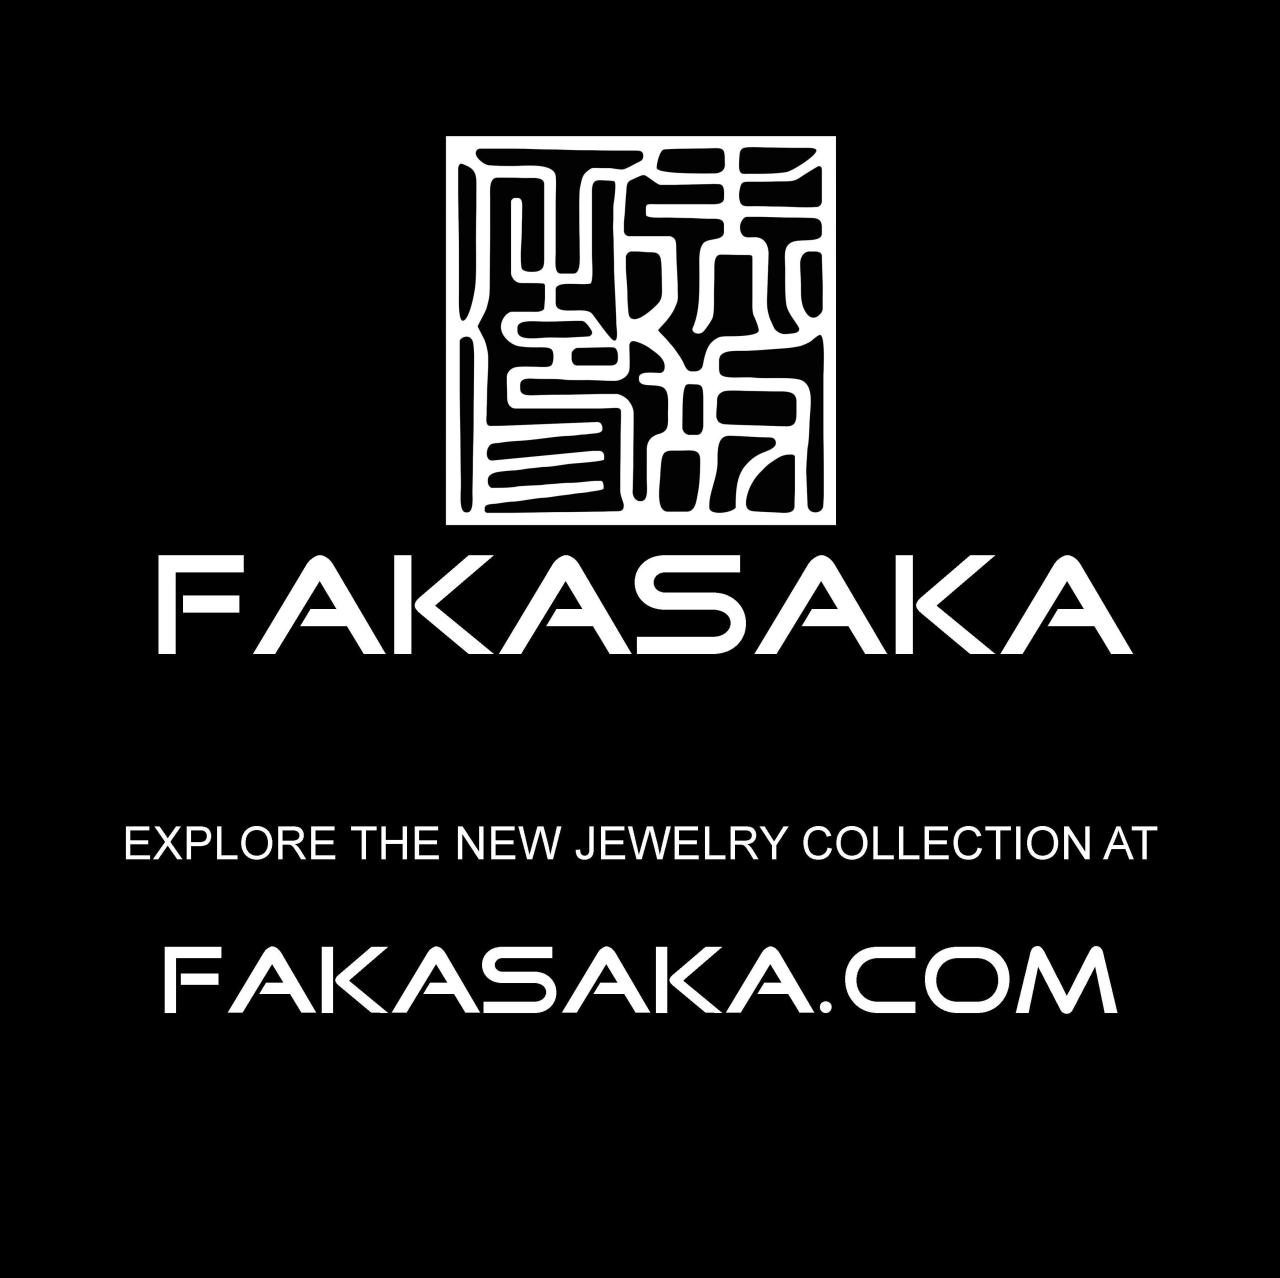 FAKASAKA DESIGN and JEWELRY. Explore the new jewelry collection at www.FAKASAKA.com